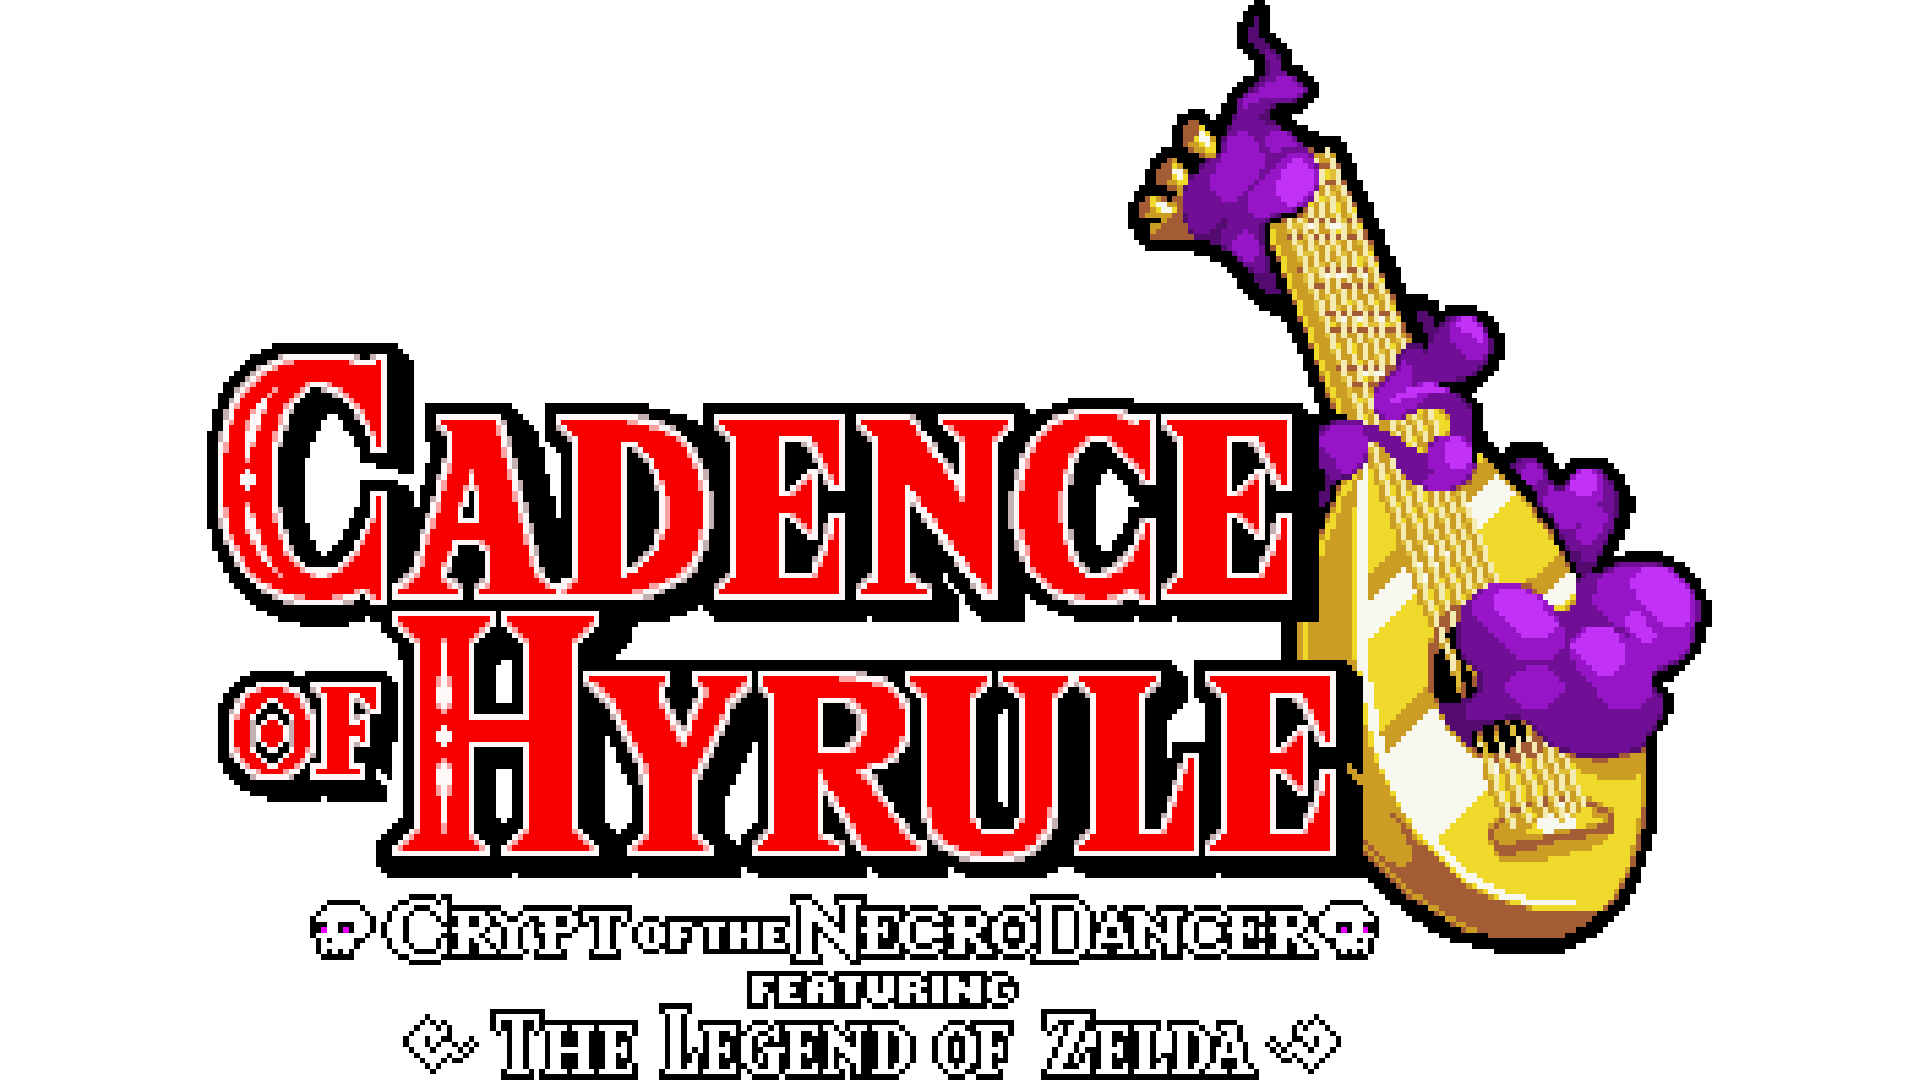 Cadence of Hyrule: Crypt of the NecroDancer feat. The Legend of Zelda Logo